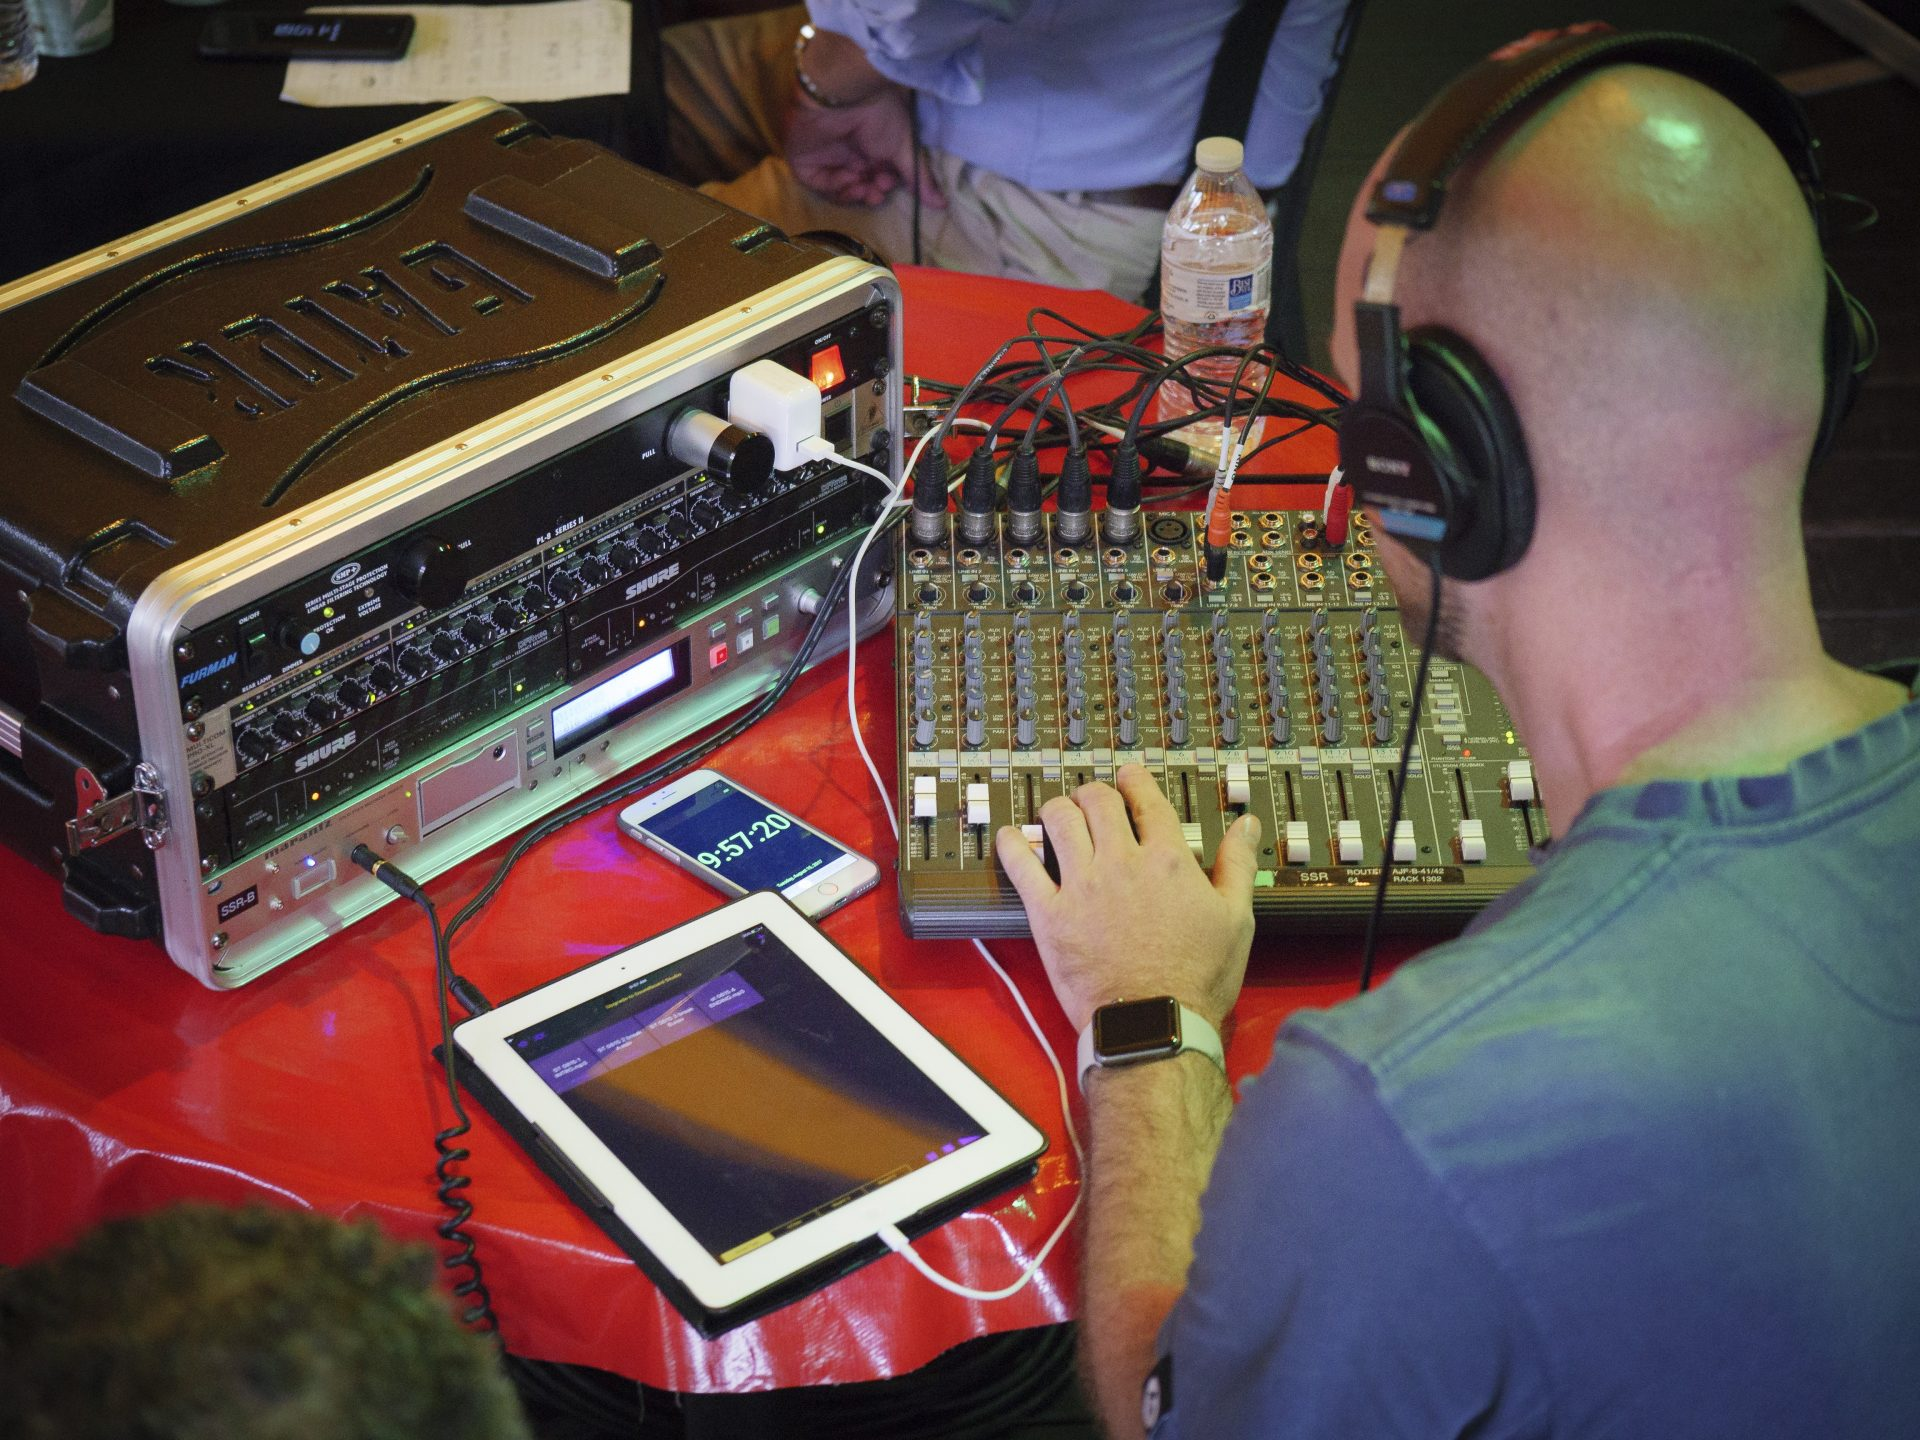 Joe Ulrich monitors the audio during a remote Smart Talk broadcast from the Jigger Shop in Mount Gretna on Aug. 15, 2017.